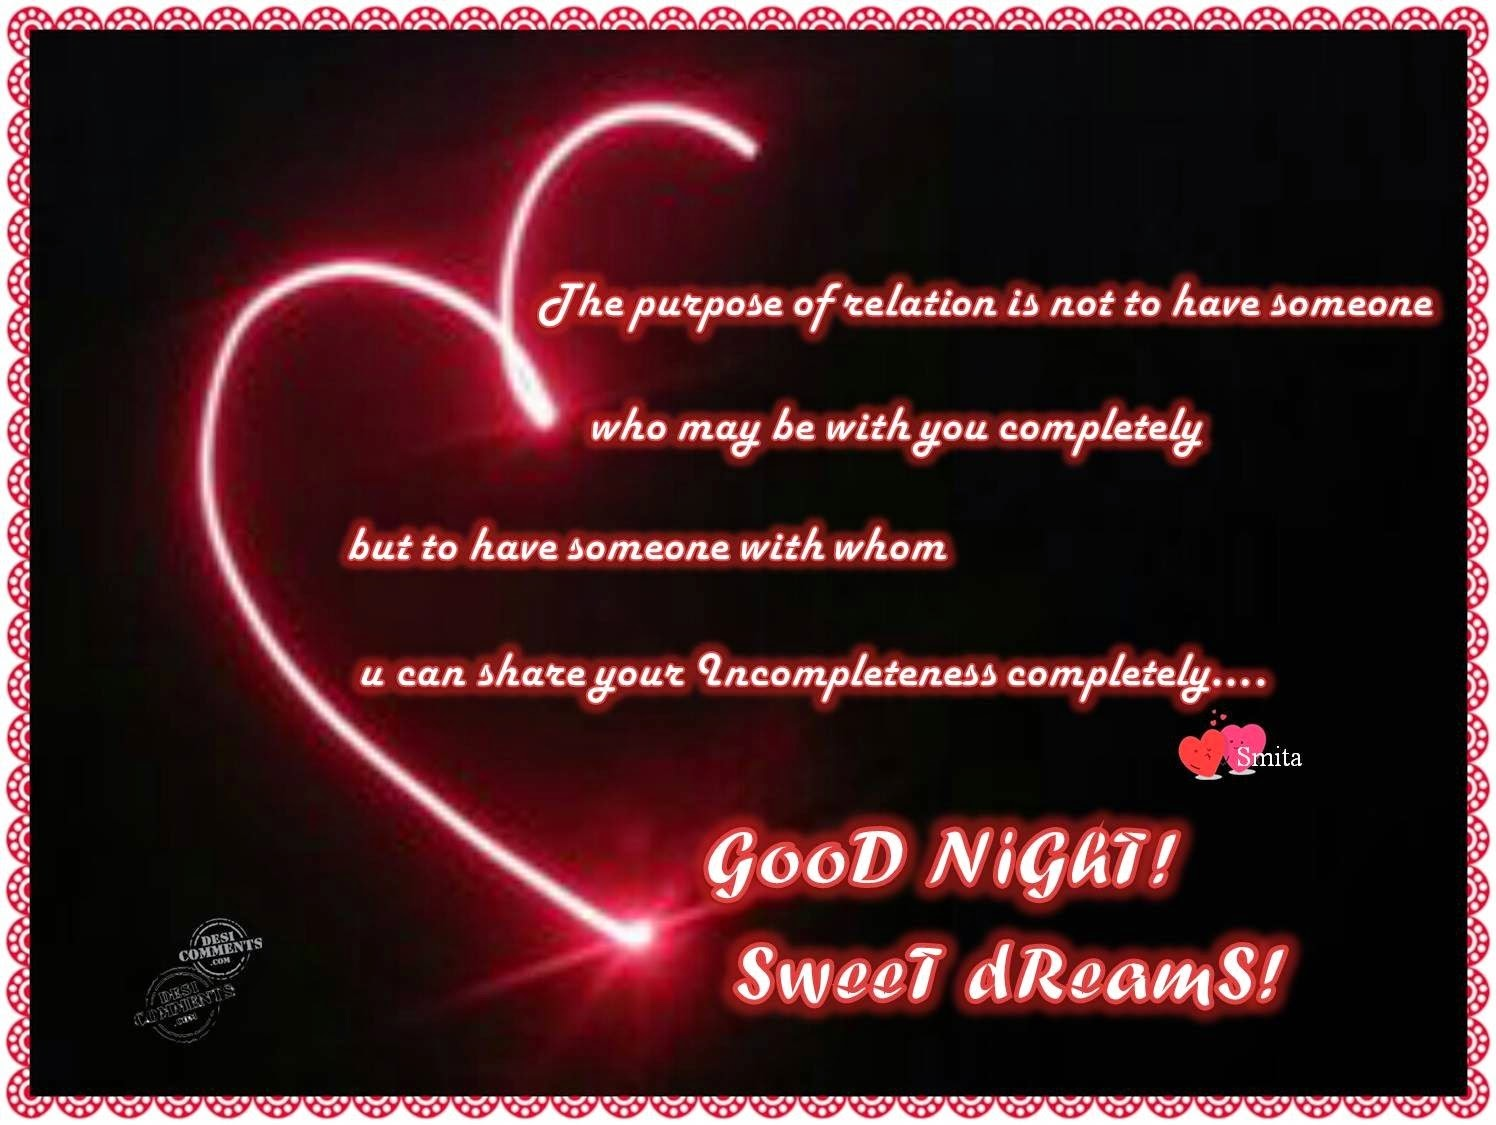 Love Heart Good Night Wallpaper : Shining Hearts Wishes Good Night Wallpaper With Quote Entertainment Magazine